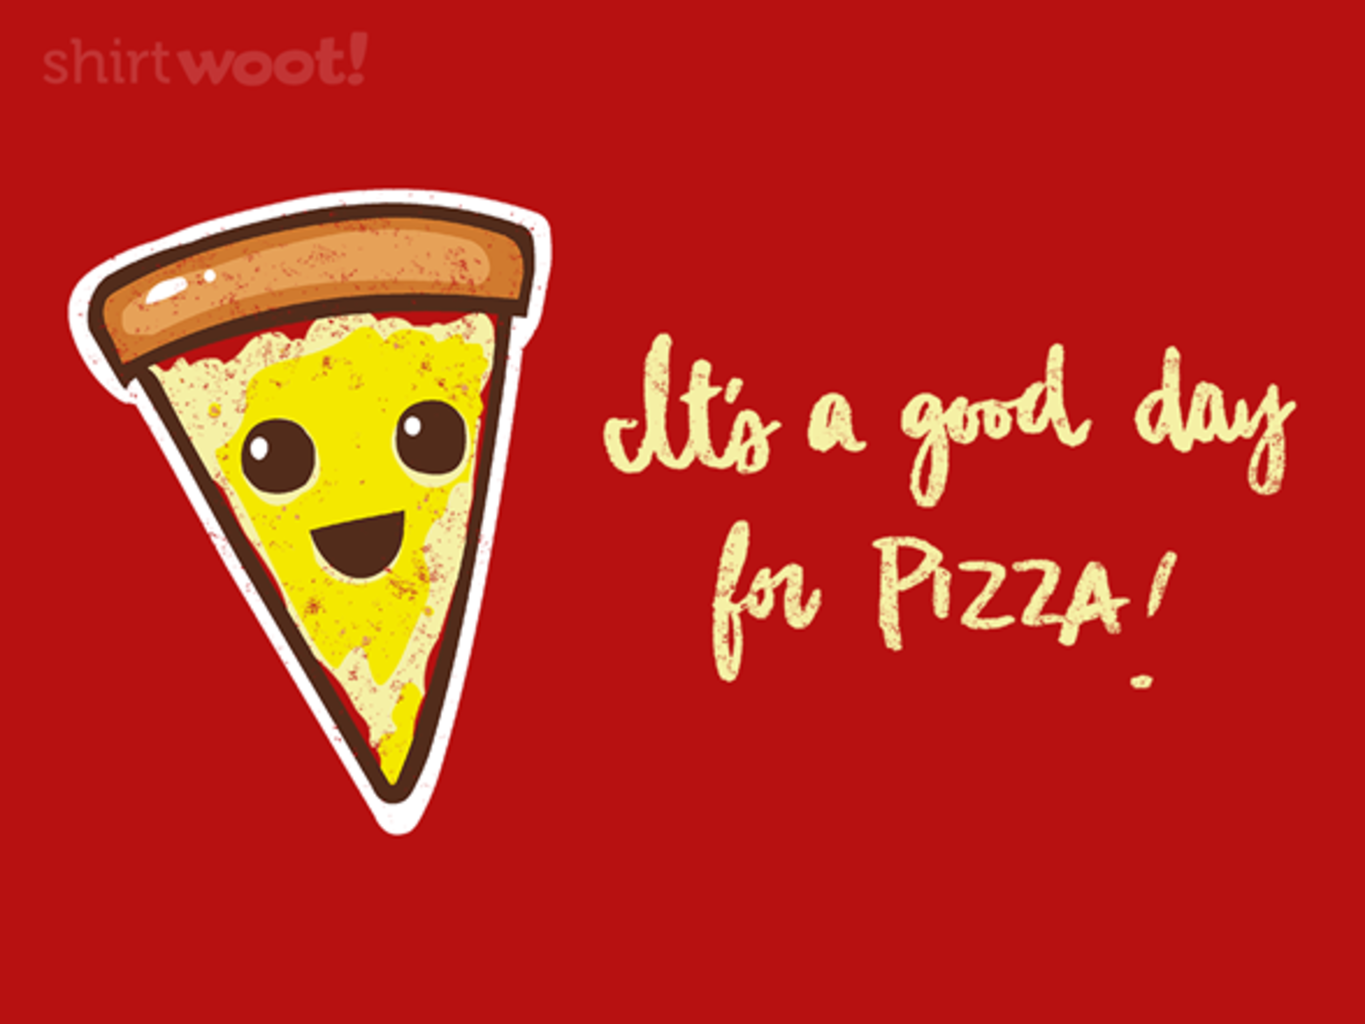 Woot!: Pizza Day Any Day!